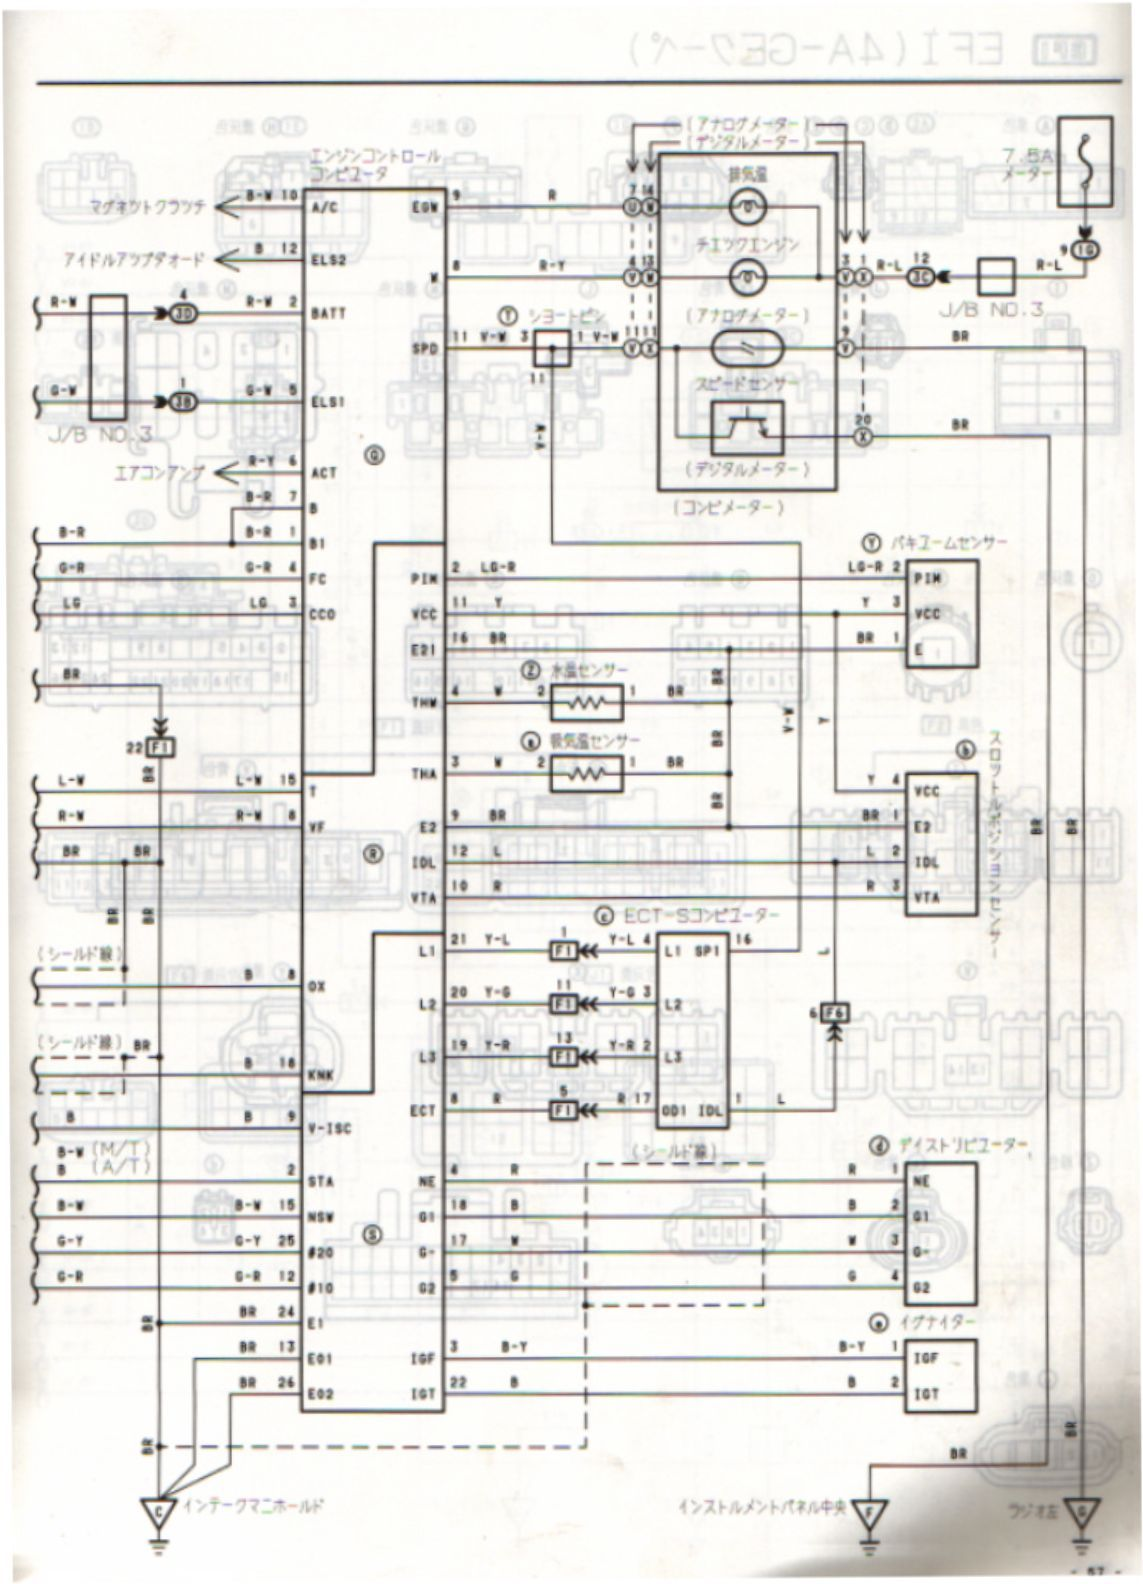 Wiring Diagram Blacktop Toyota Corolla Engine Bp Ecu